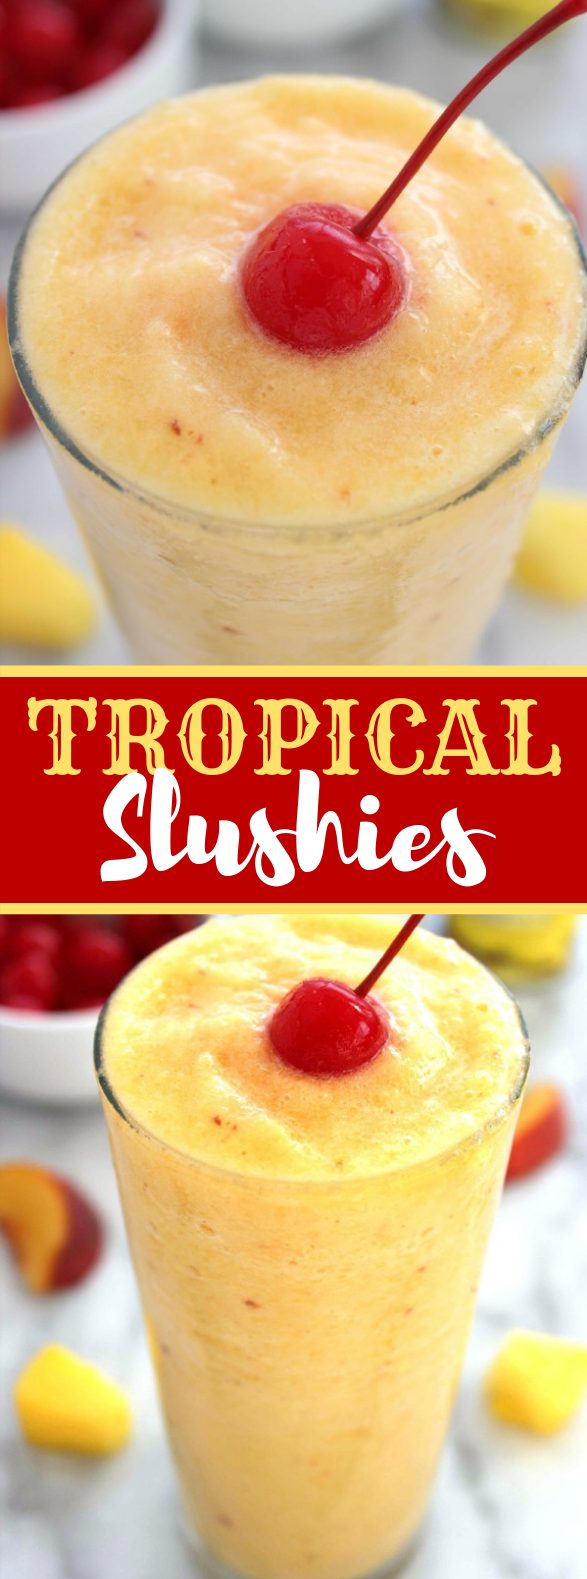 TROPICAL SLUSHIES #smoothies #drinks